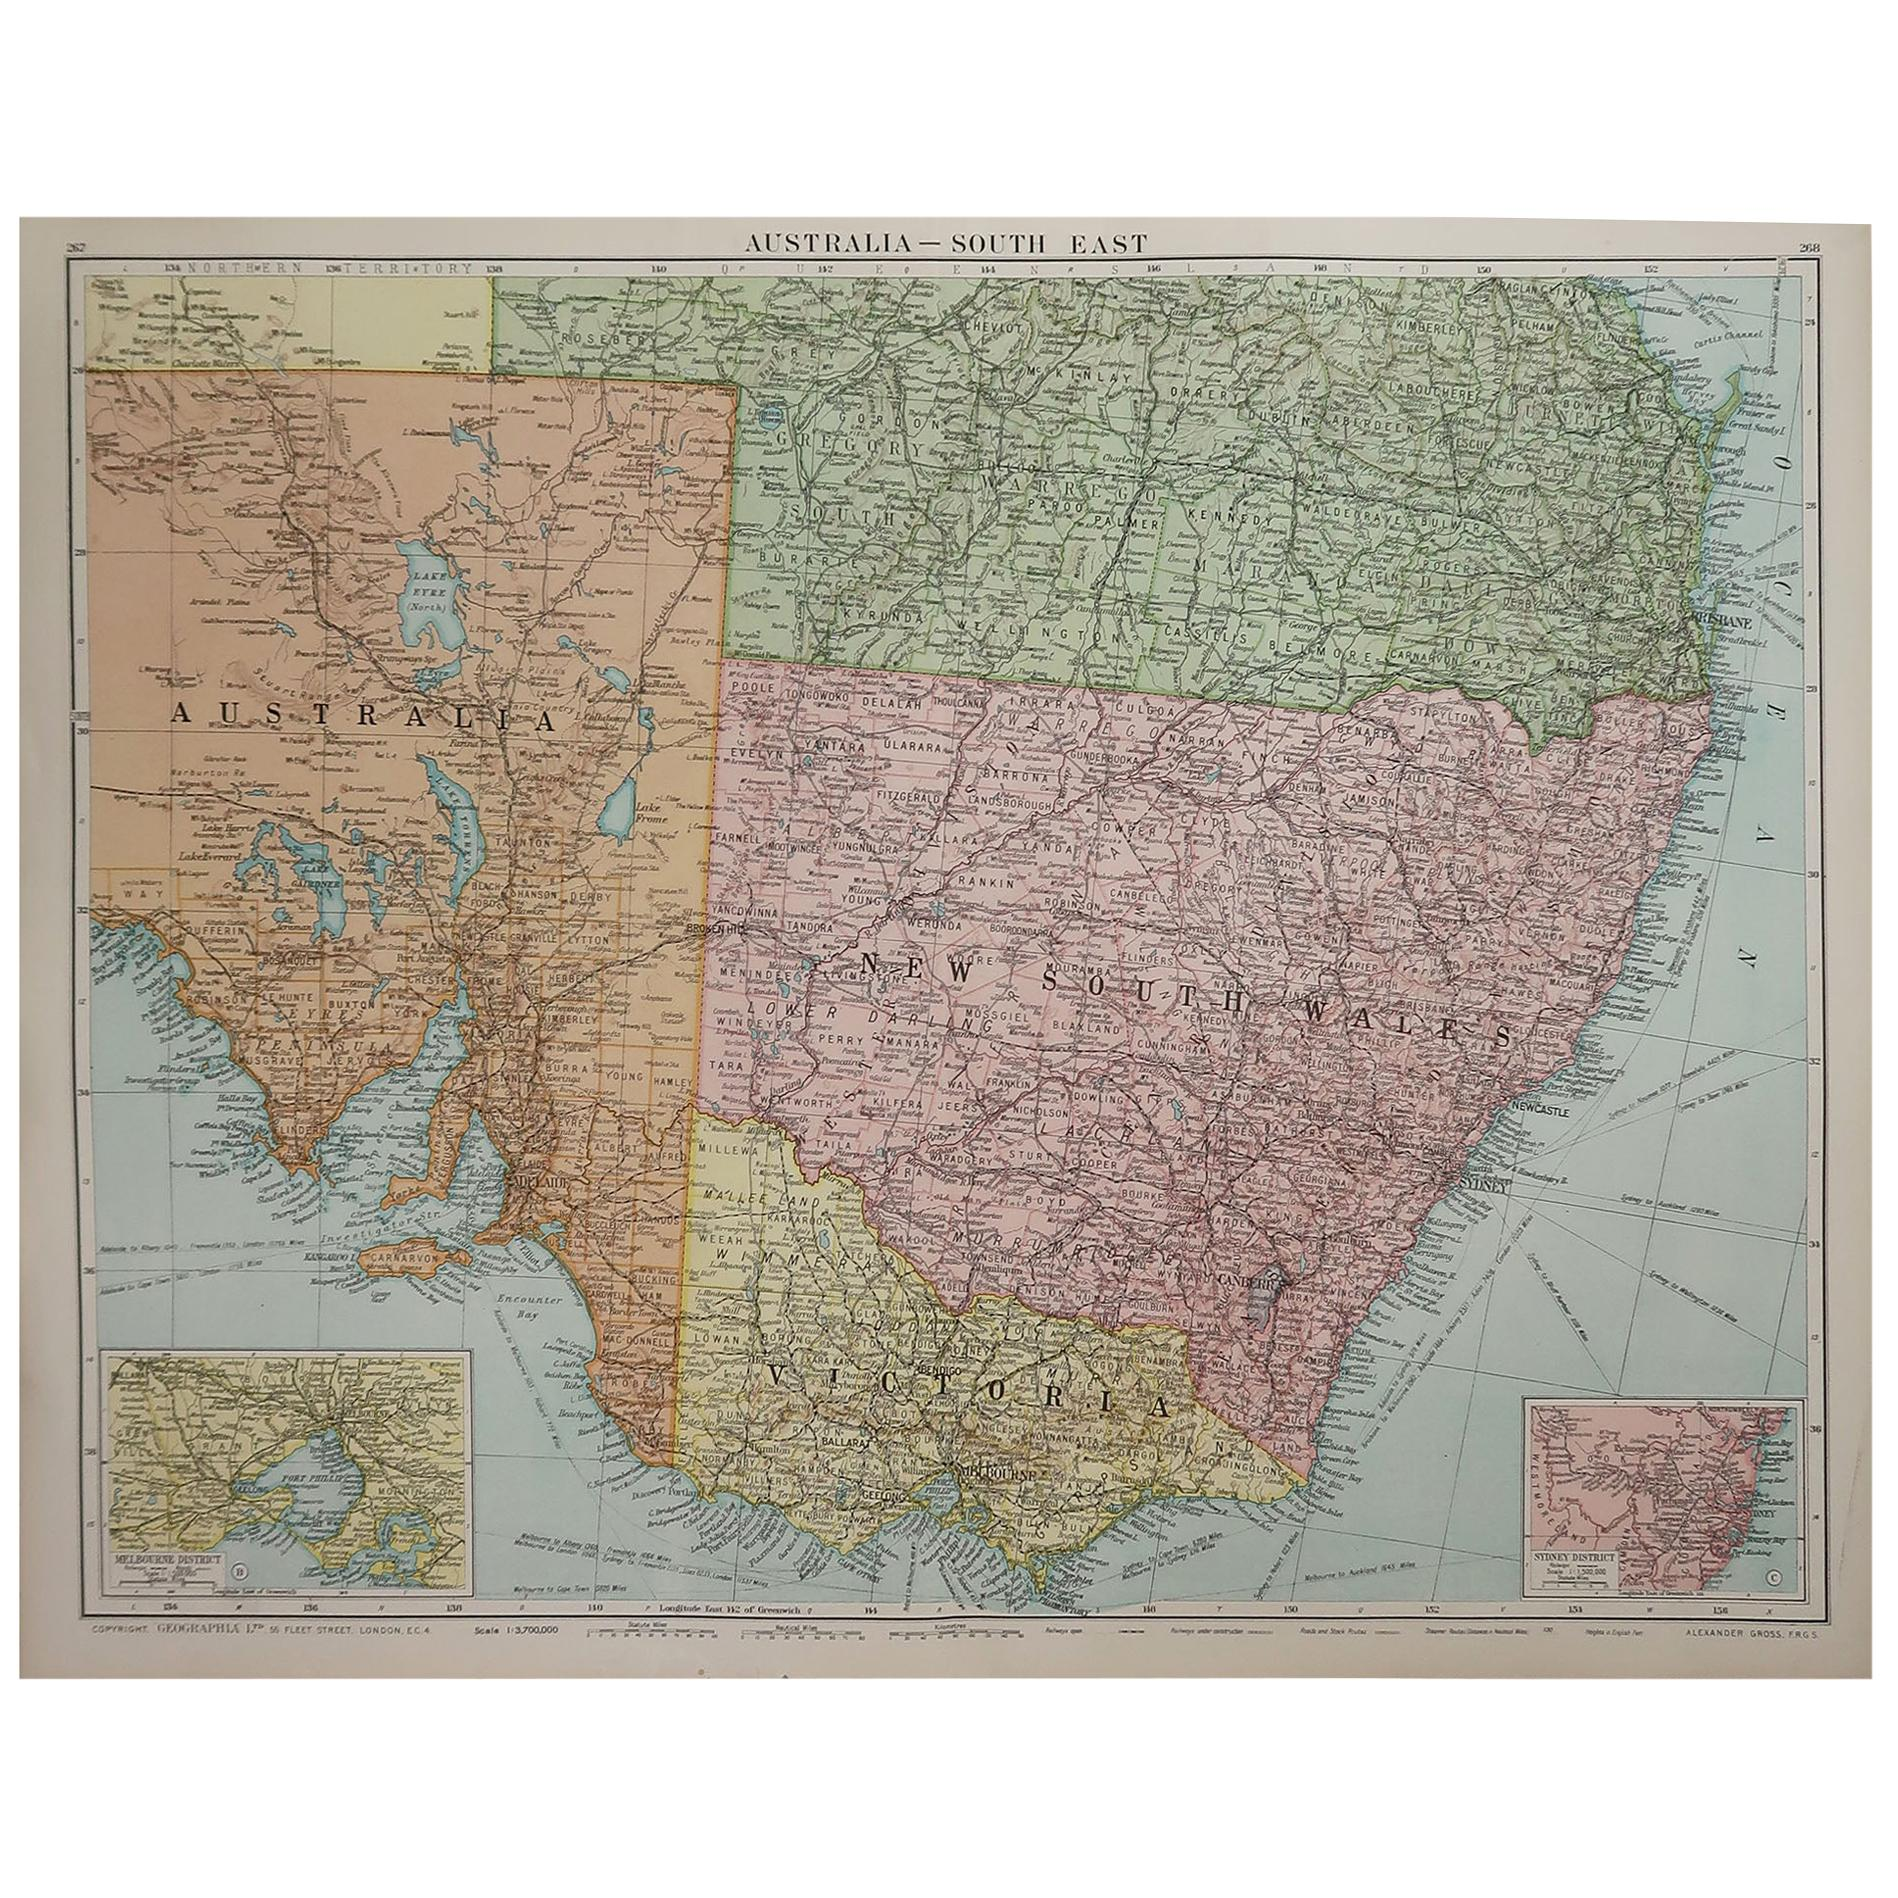 Large Original Vintage Map of New South Wales, Australia, circa 1920